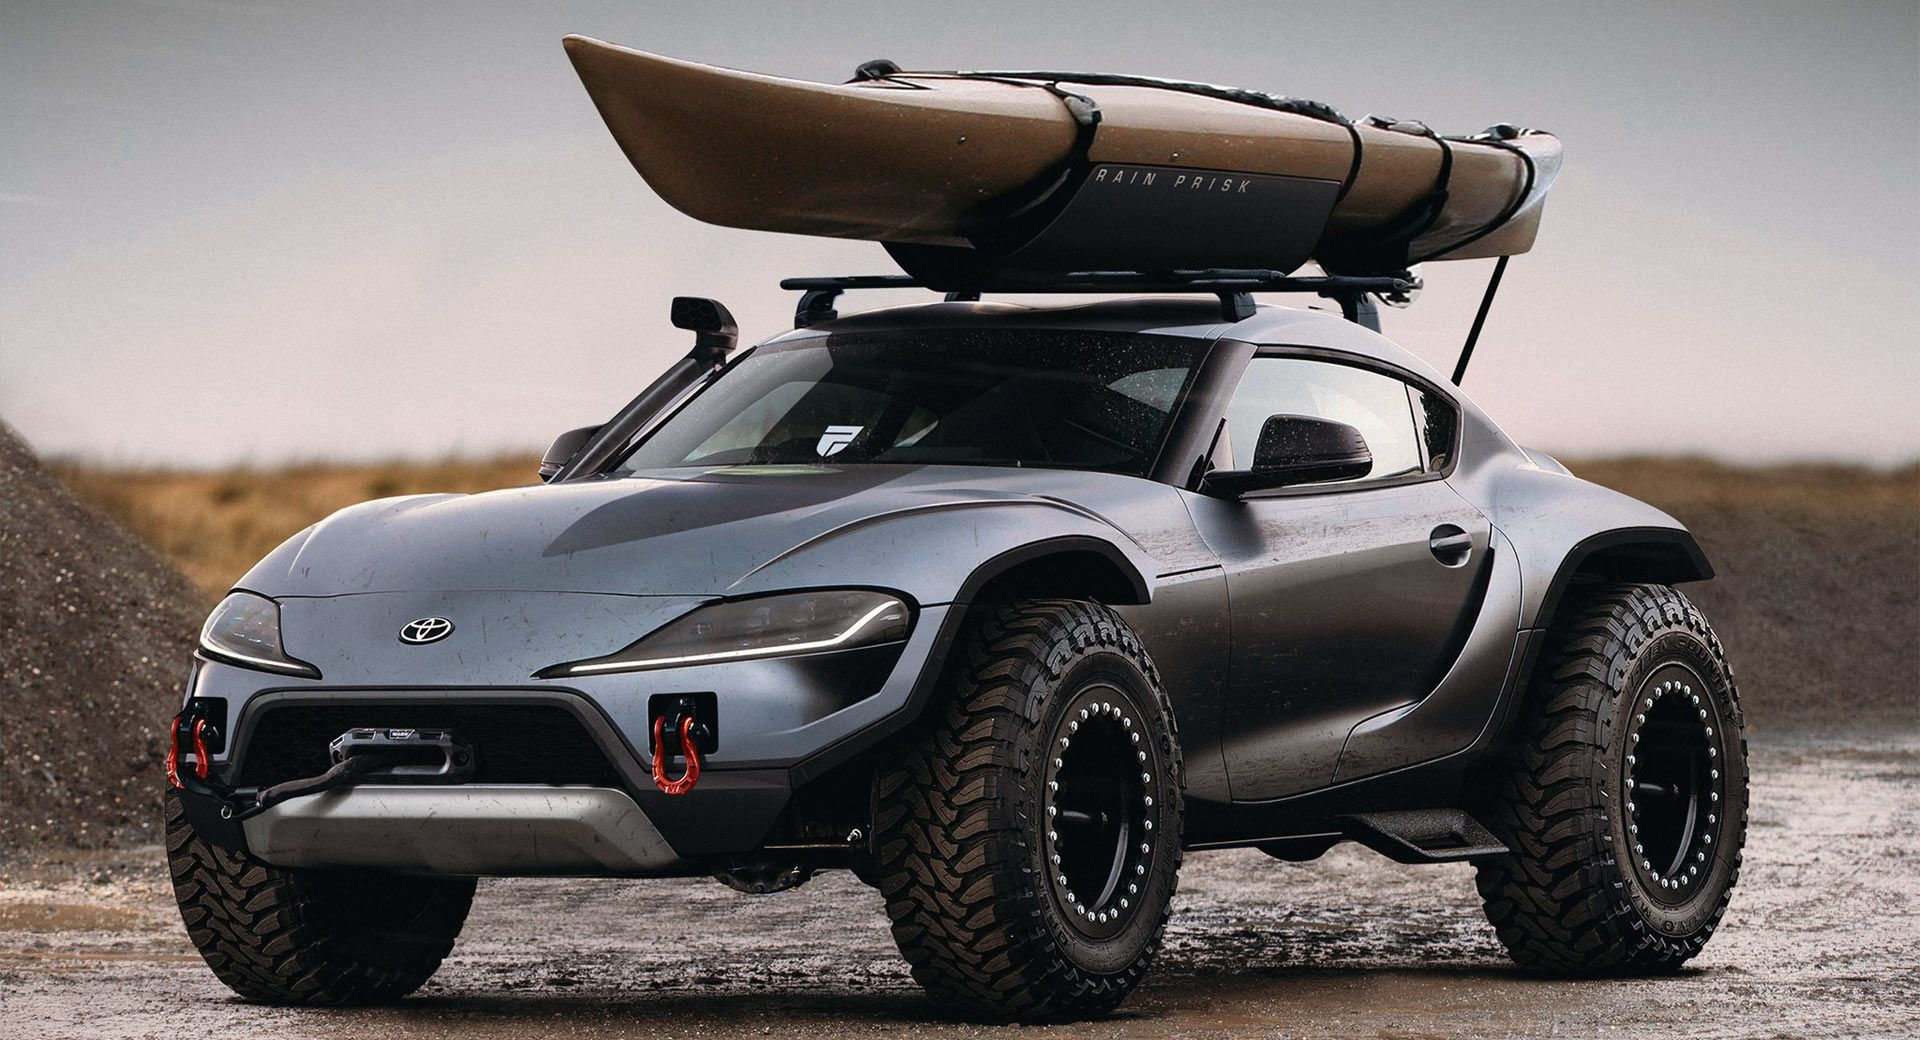 Lifted Toyota Supra Could Be The Ultimate Off Roader Toyota Supra Dune Buggy Offroad Vehicles